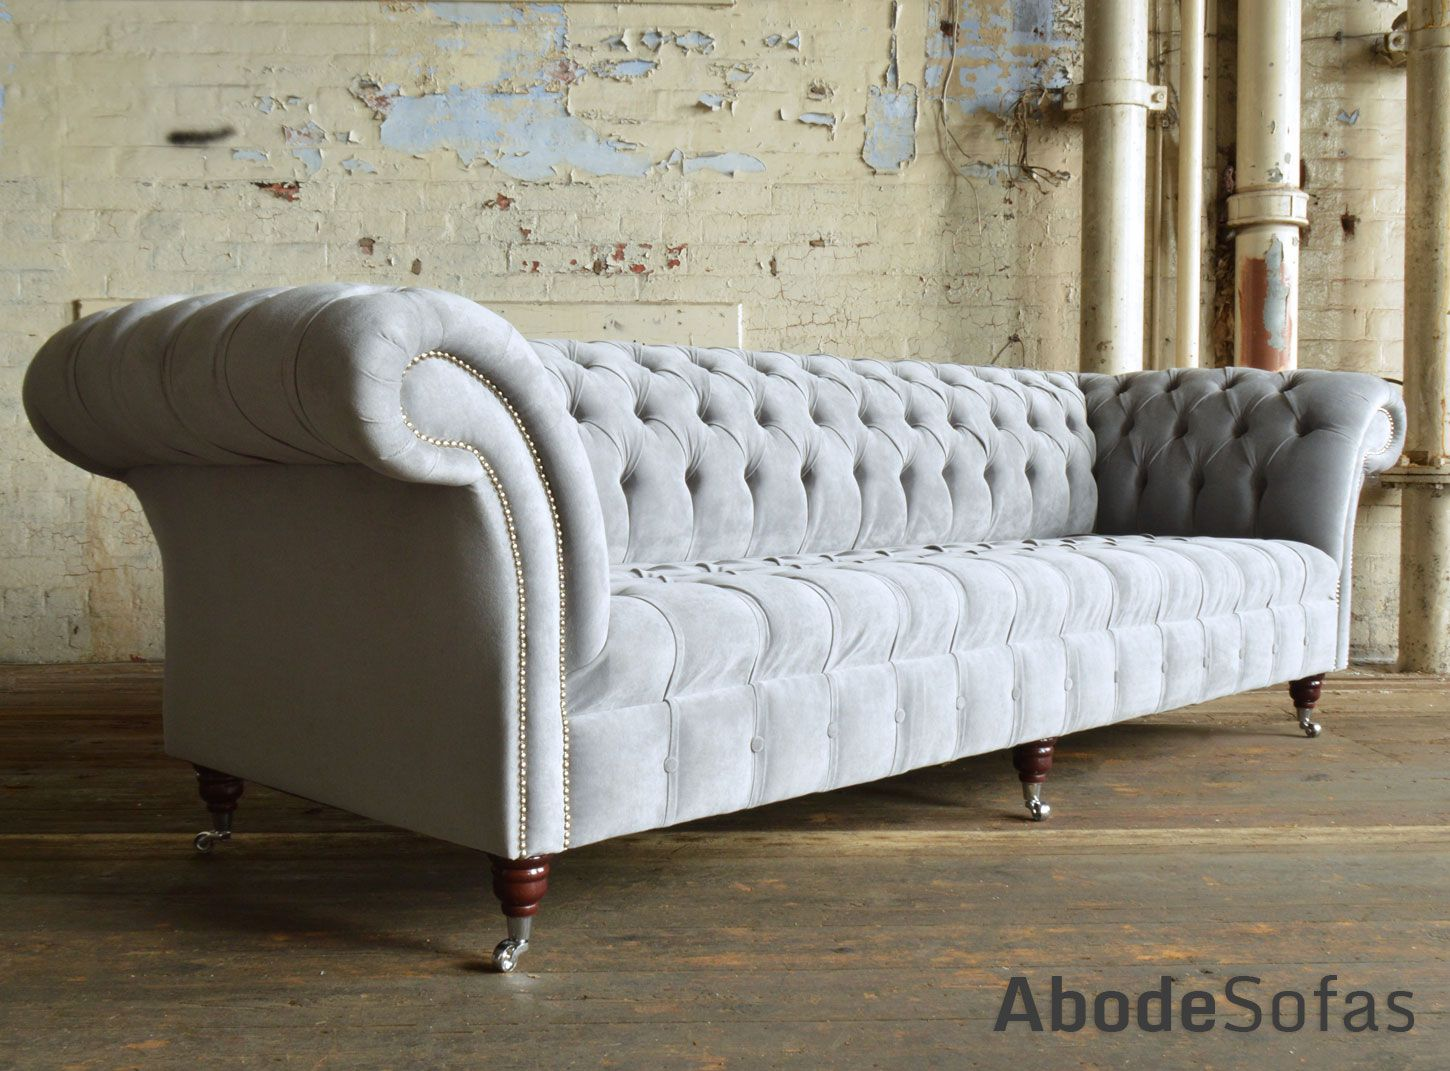 Moderne Chesterfield Banken : Naples velvet belmont chesterfield sofa couch velvet